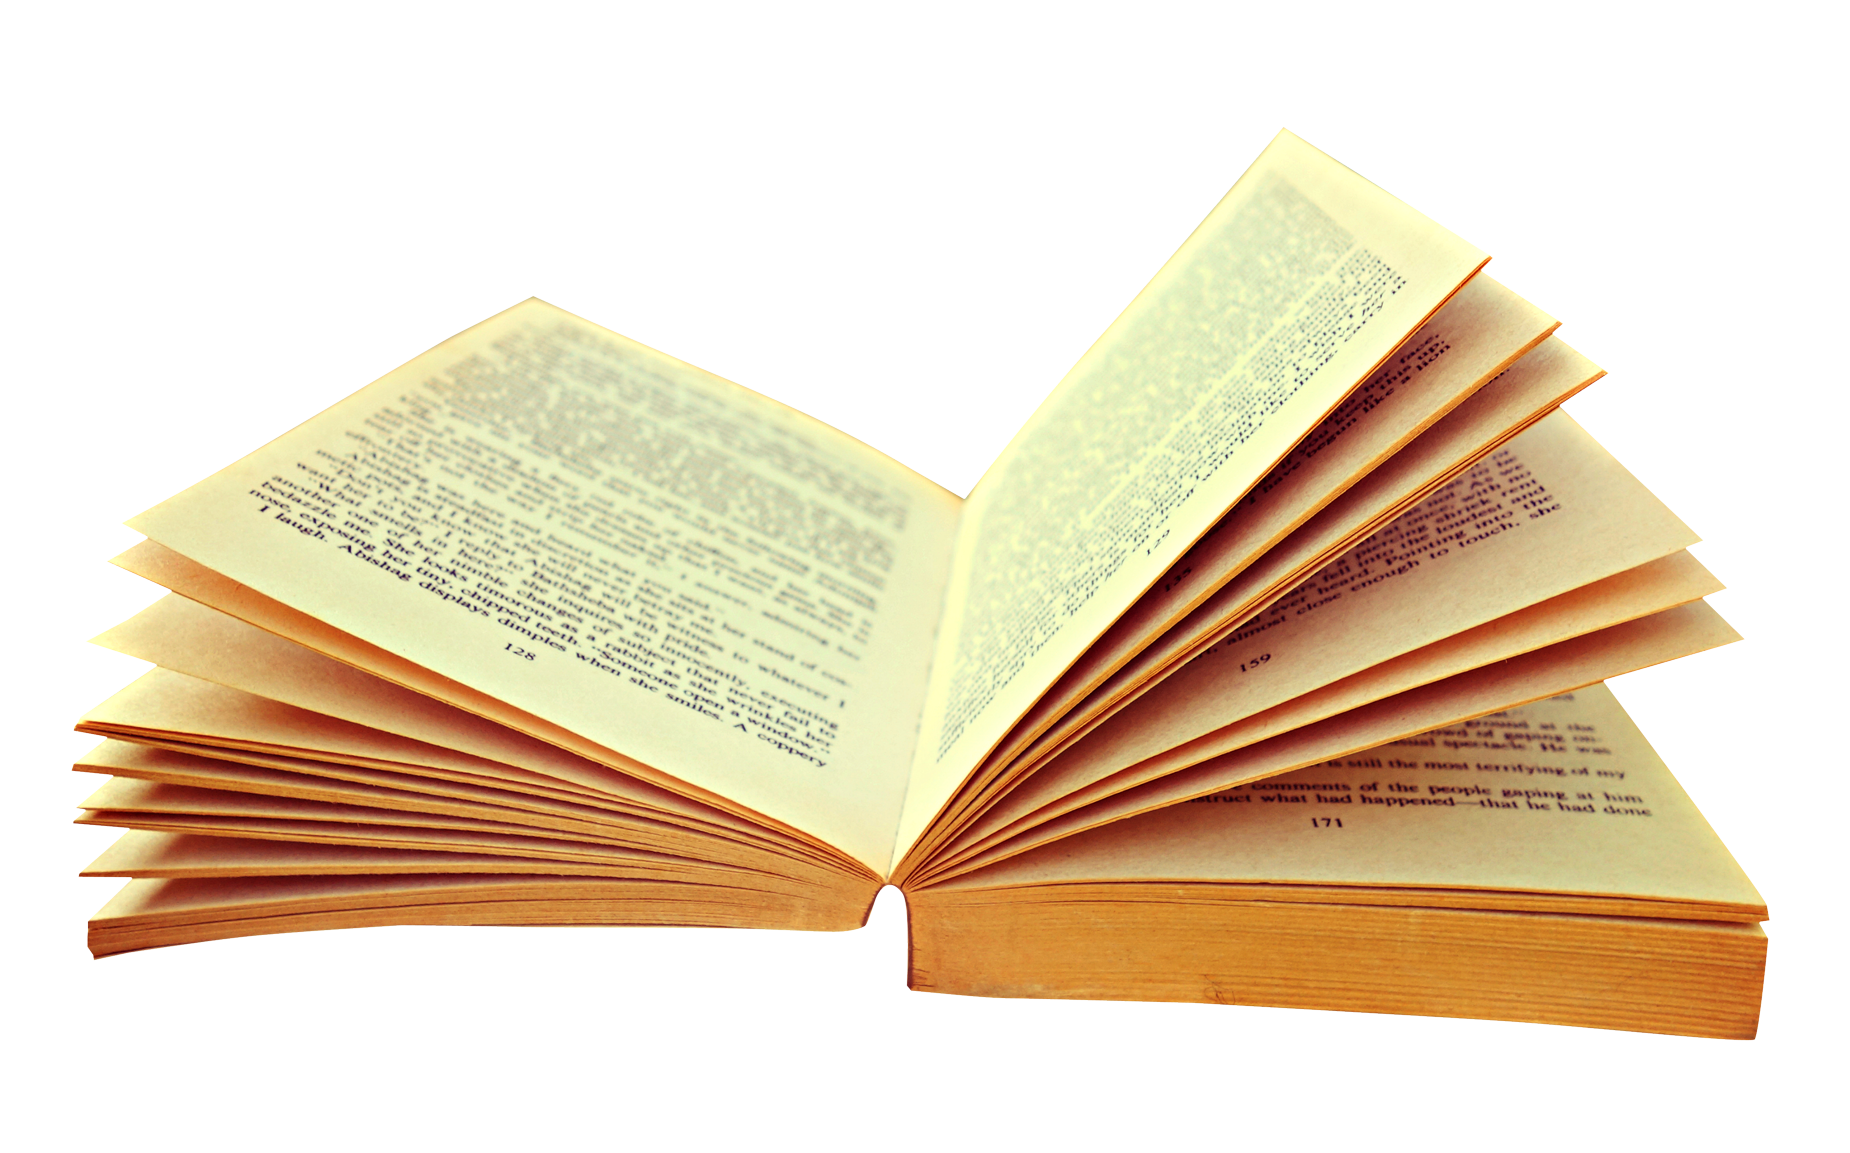 Book PNG - 16948